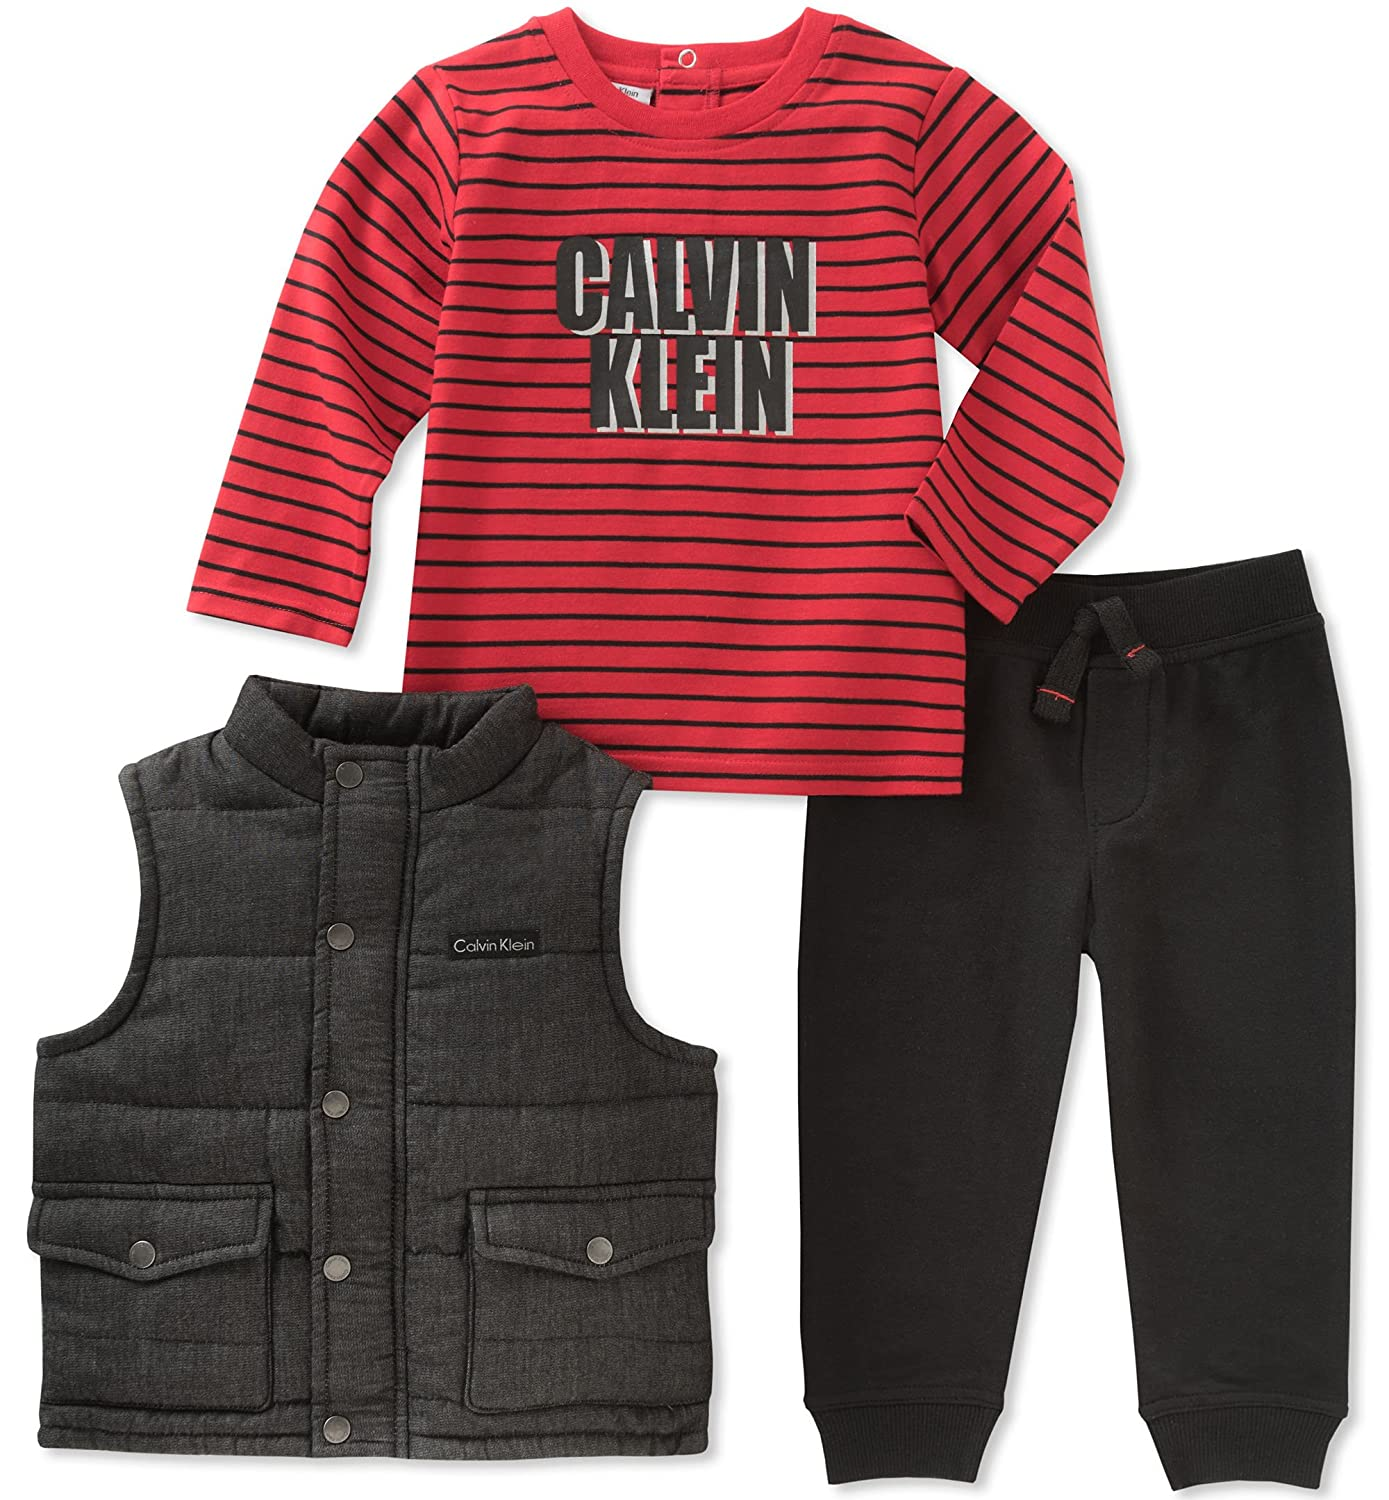 b7c83ca51fe1 Amazon.com  Calvin Klein Baby 3 Pc Vest Set Boys  Clothing